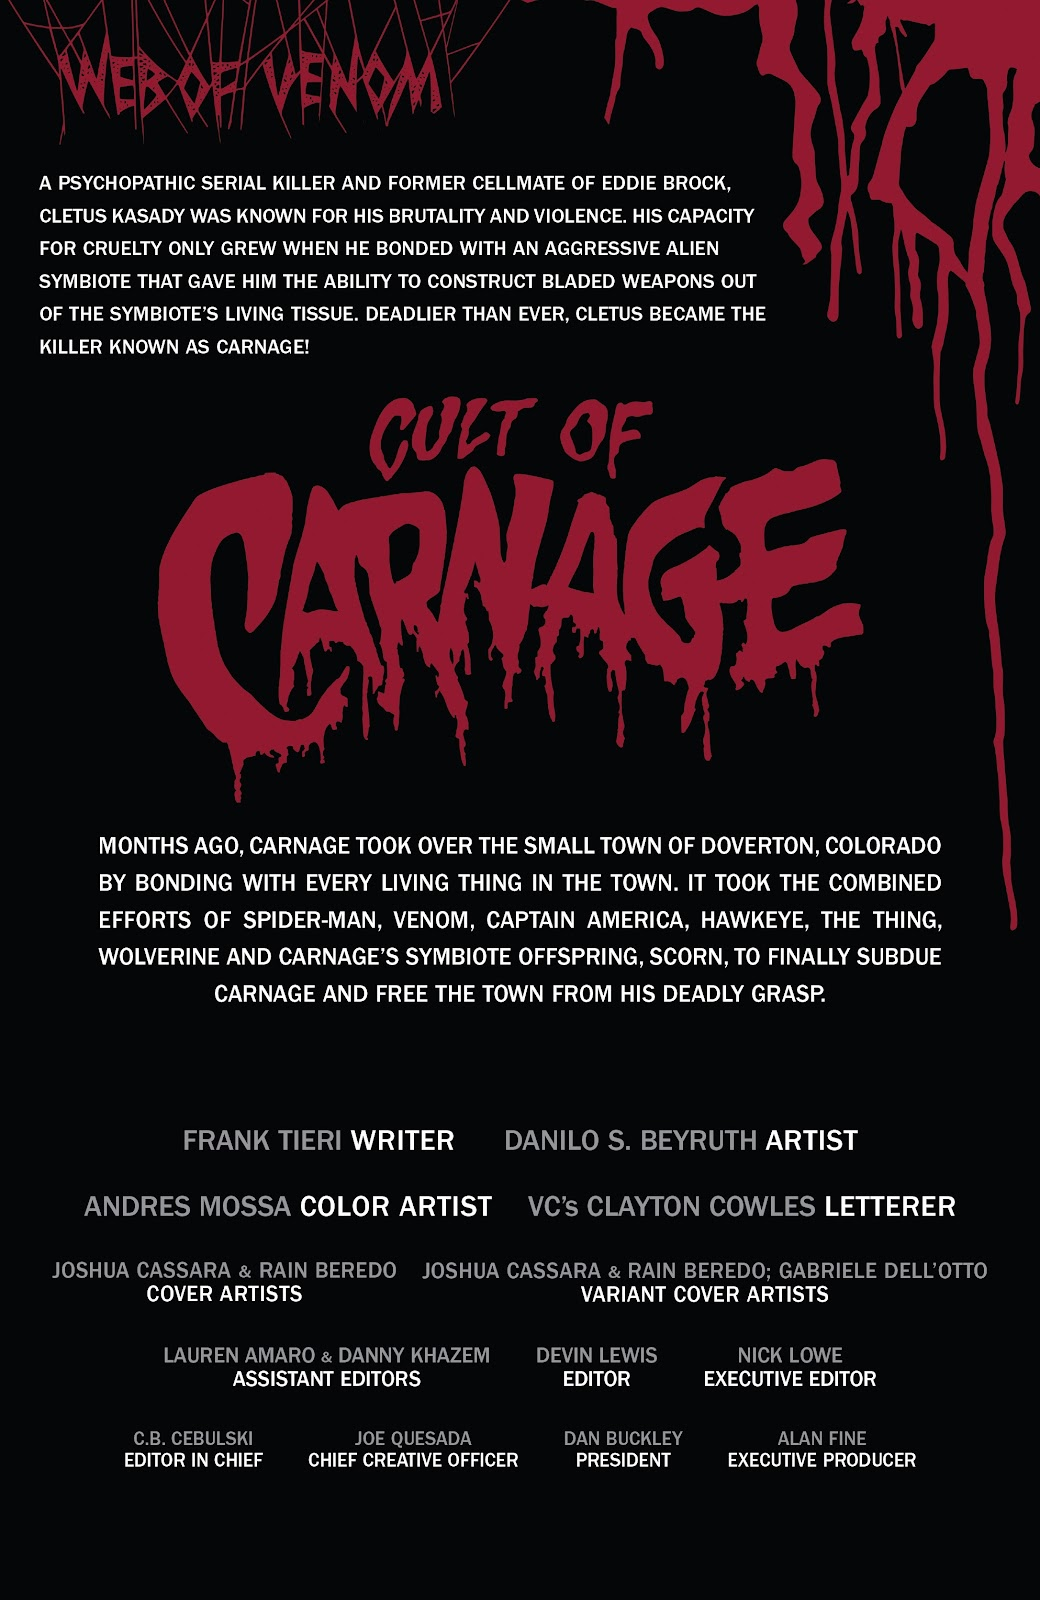 Read online Web of Venom: Cult of Carnage comic -  Issue # Full - 2